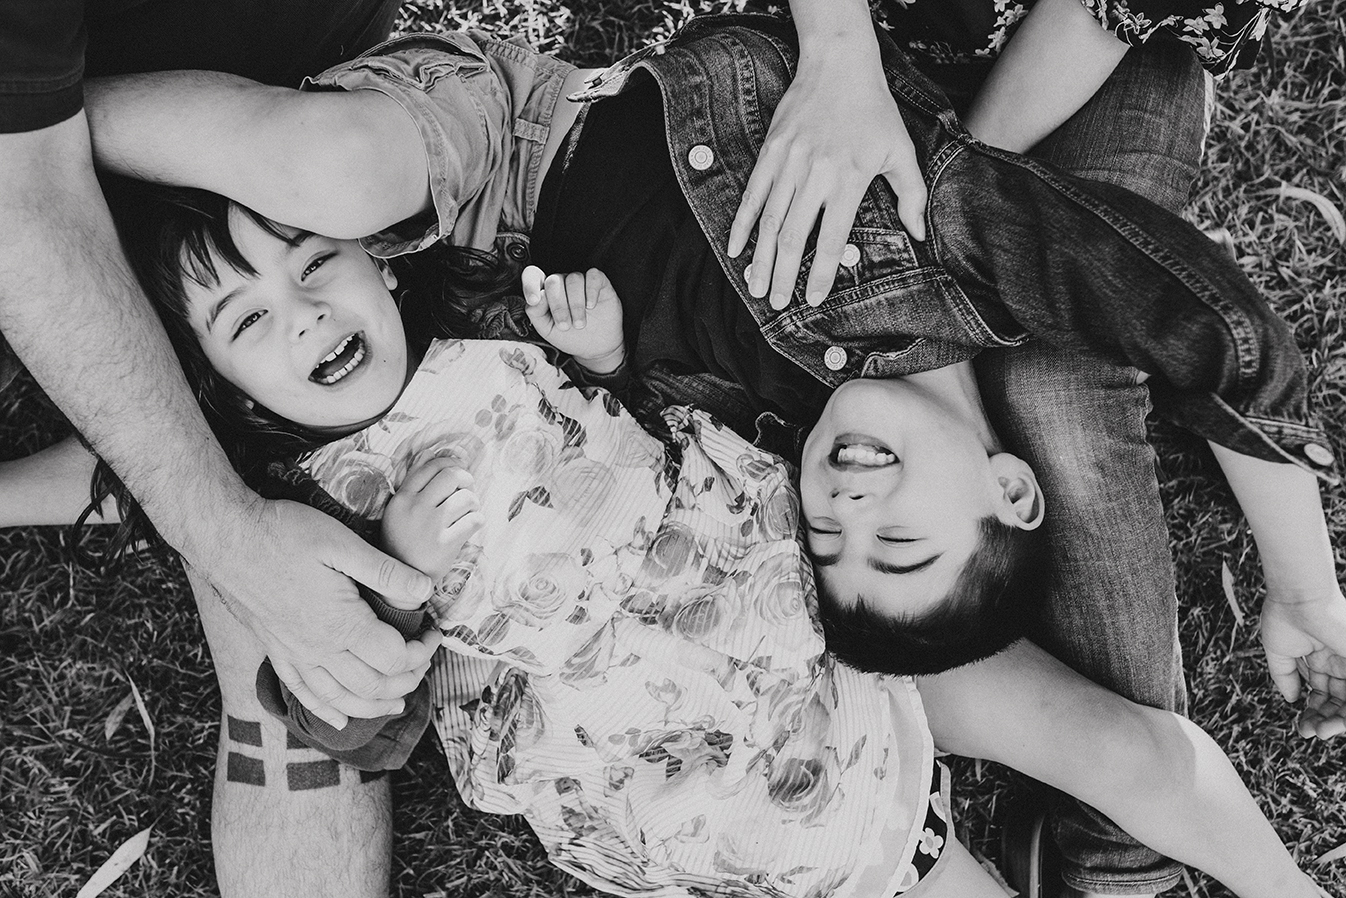 Express Family sesH - $399This includes:- a 30 minute photo session with your little fam - 15 handcrafted images - USB package with high resolution photos - online gallery to share with loved ones - special gift pack